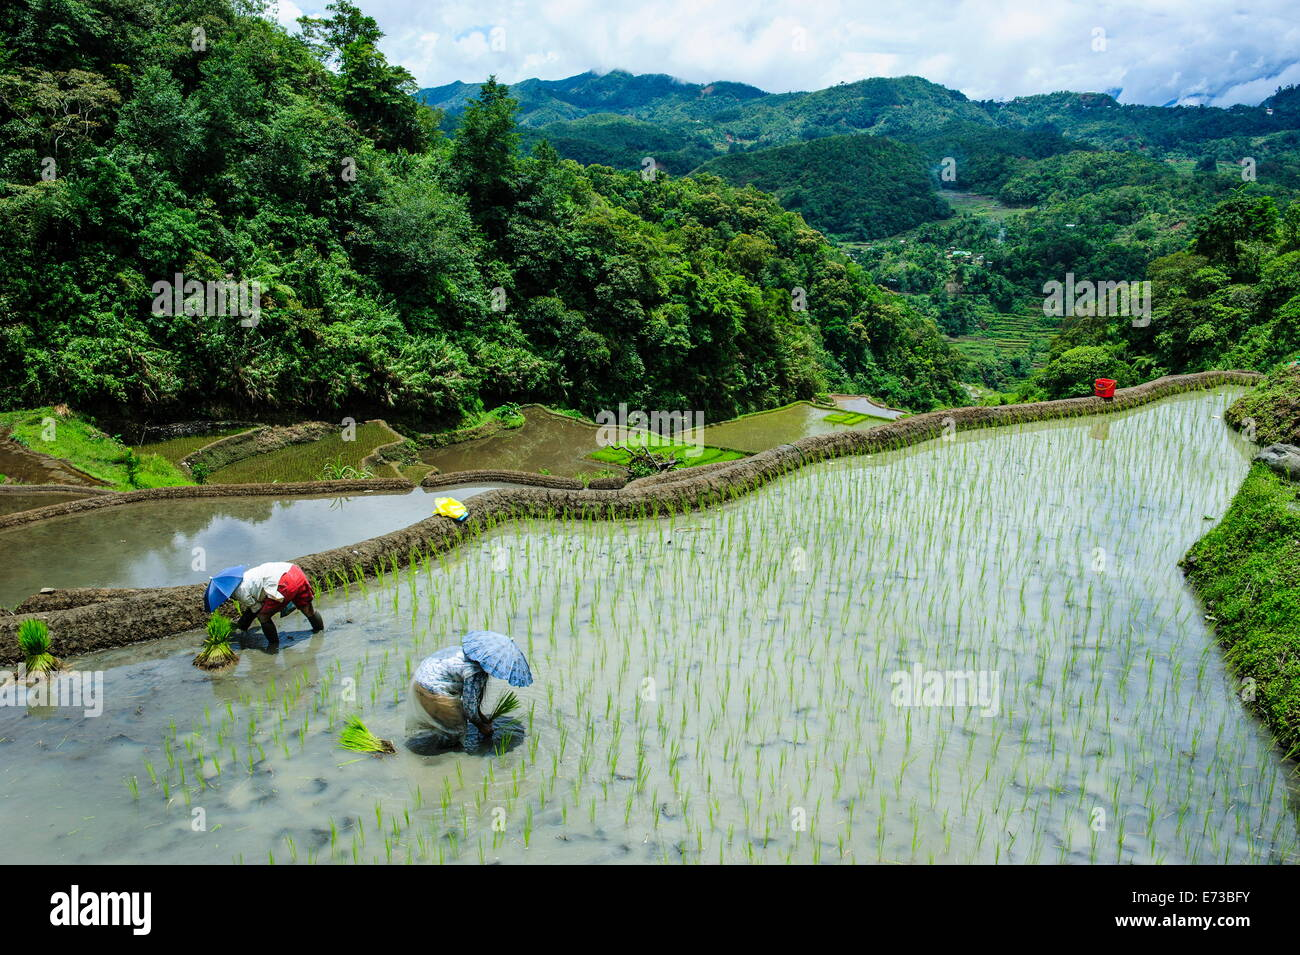 People harvesting in the rice terraces of Banaue, UNESCO World Heritage Site, Northern Luzon, Philippines, Southeast - Stock Image